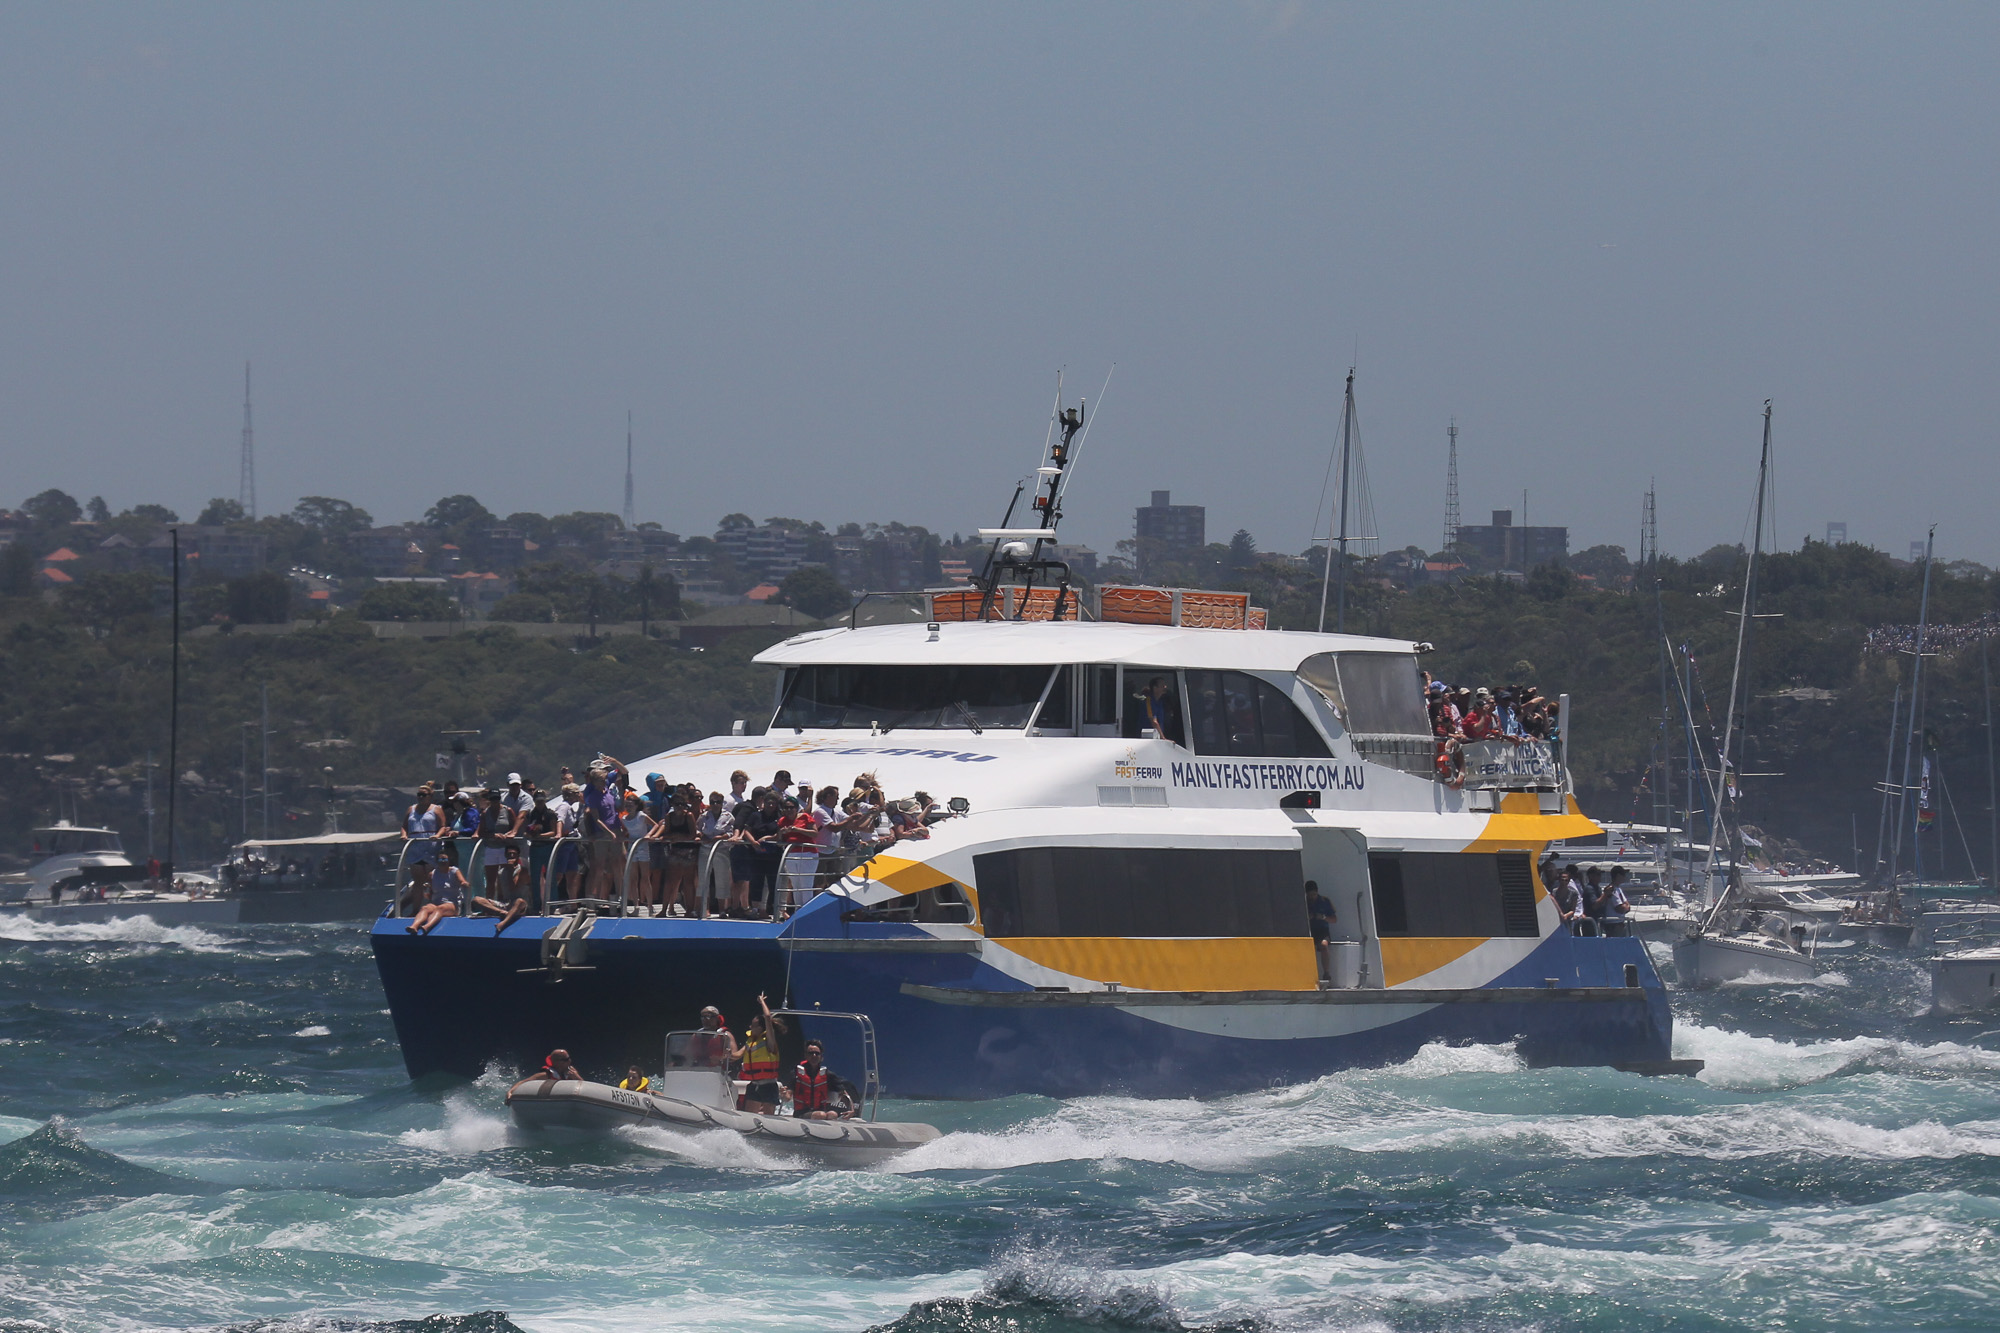 Ocean Rider leaving Sydney Harbour, Boxing Day Cruise